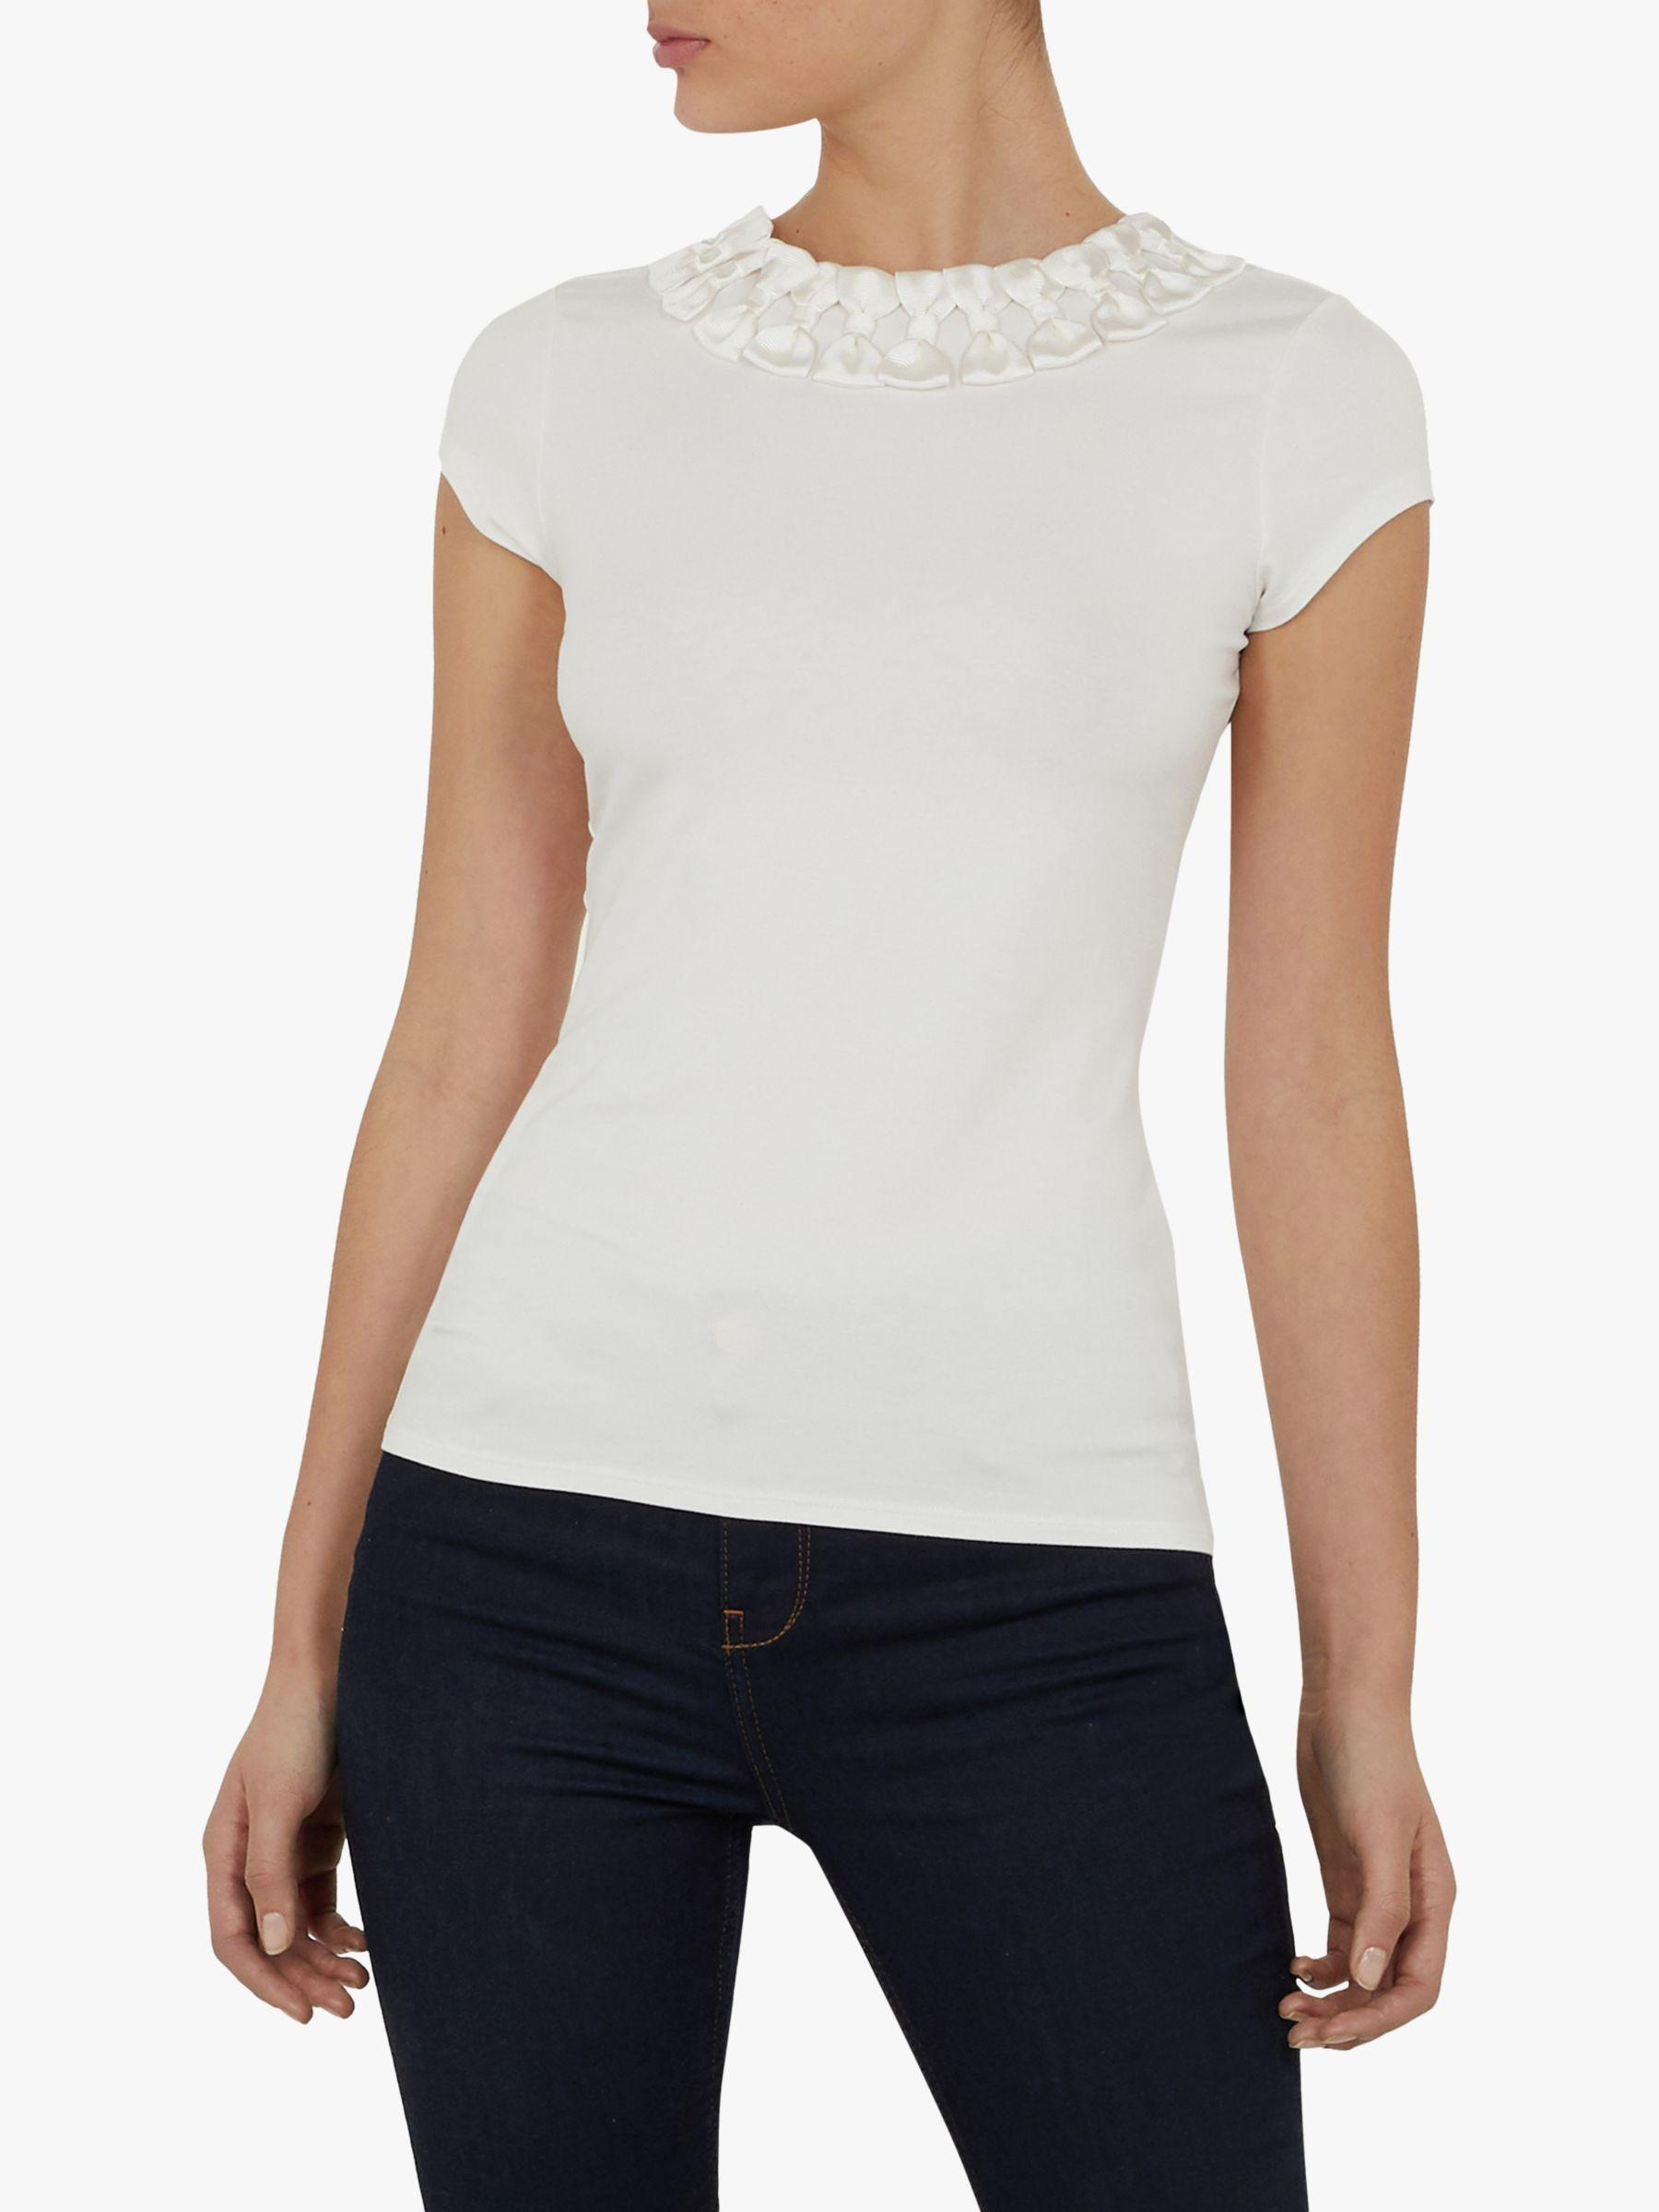 429a2acb489ae Ted Baker Charre Bow Neck Fitted Top in White - Lyst